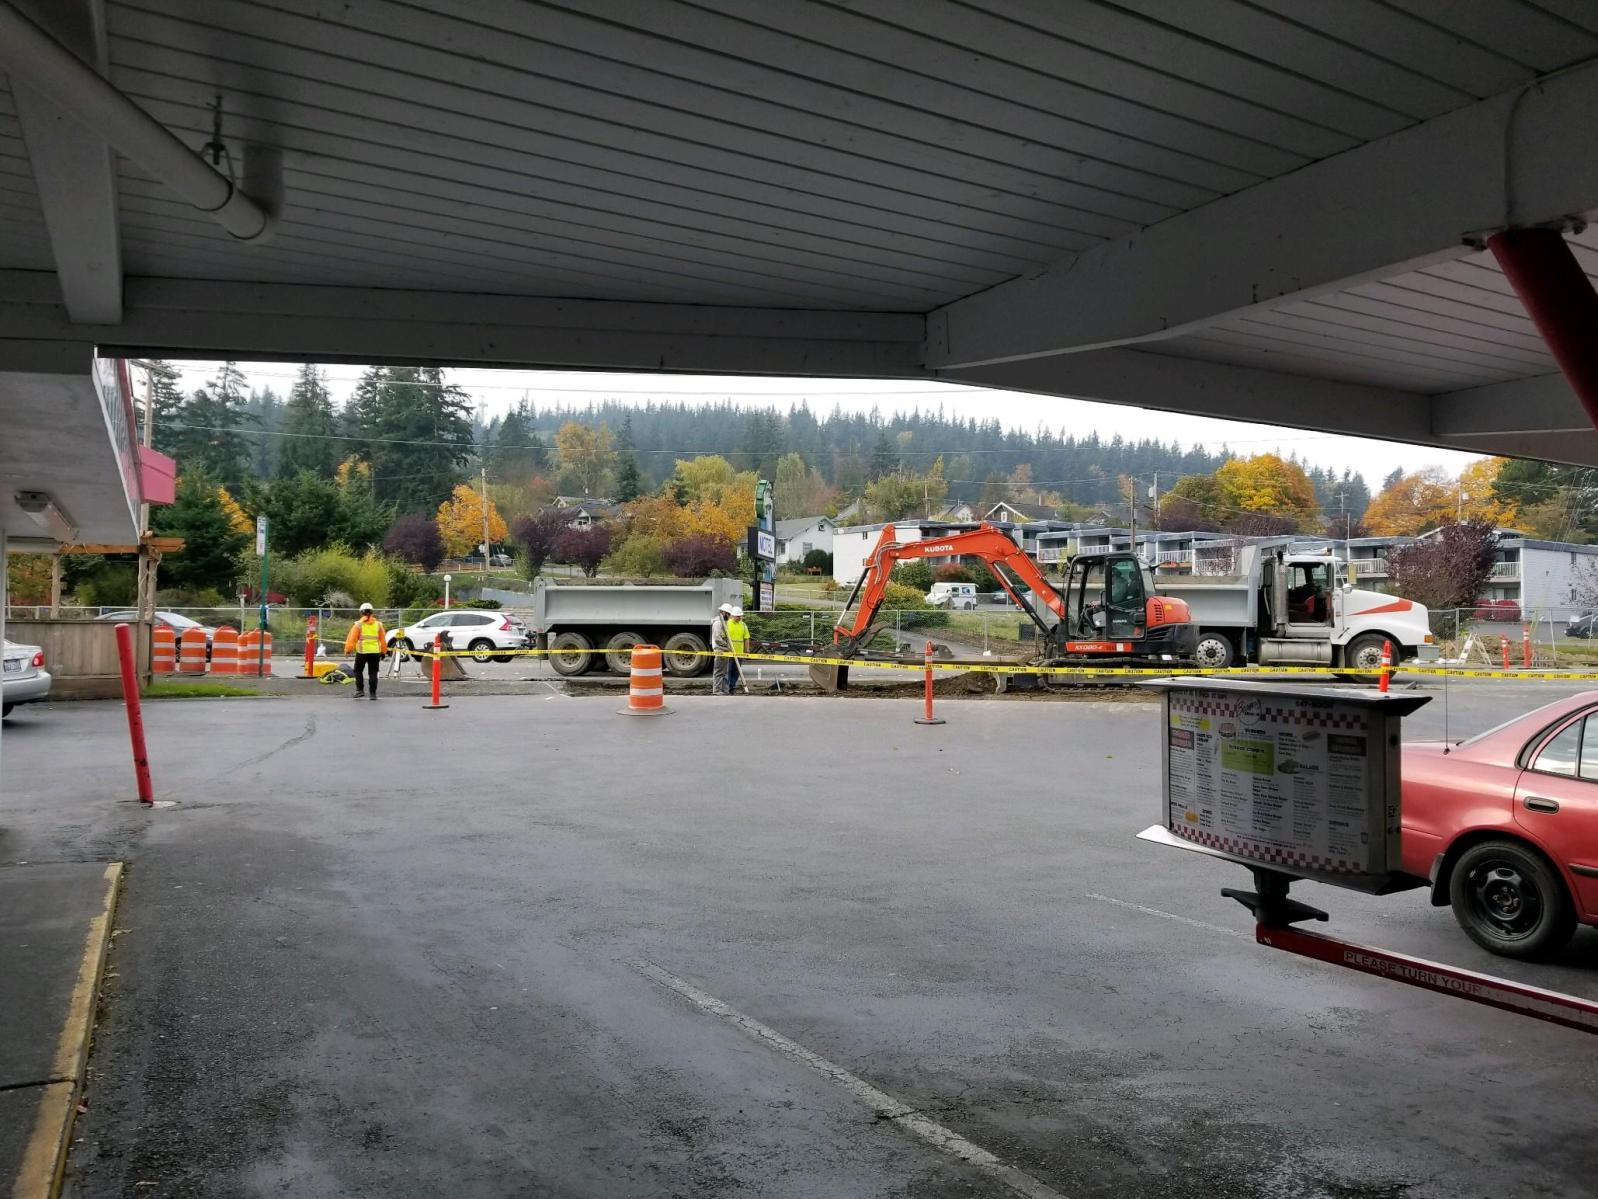 sidewalks getting a makeover on samish way 2018-10-23